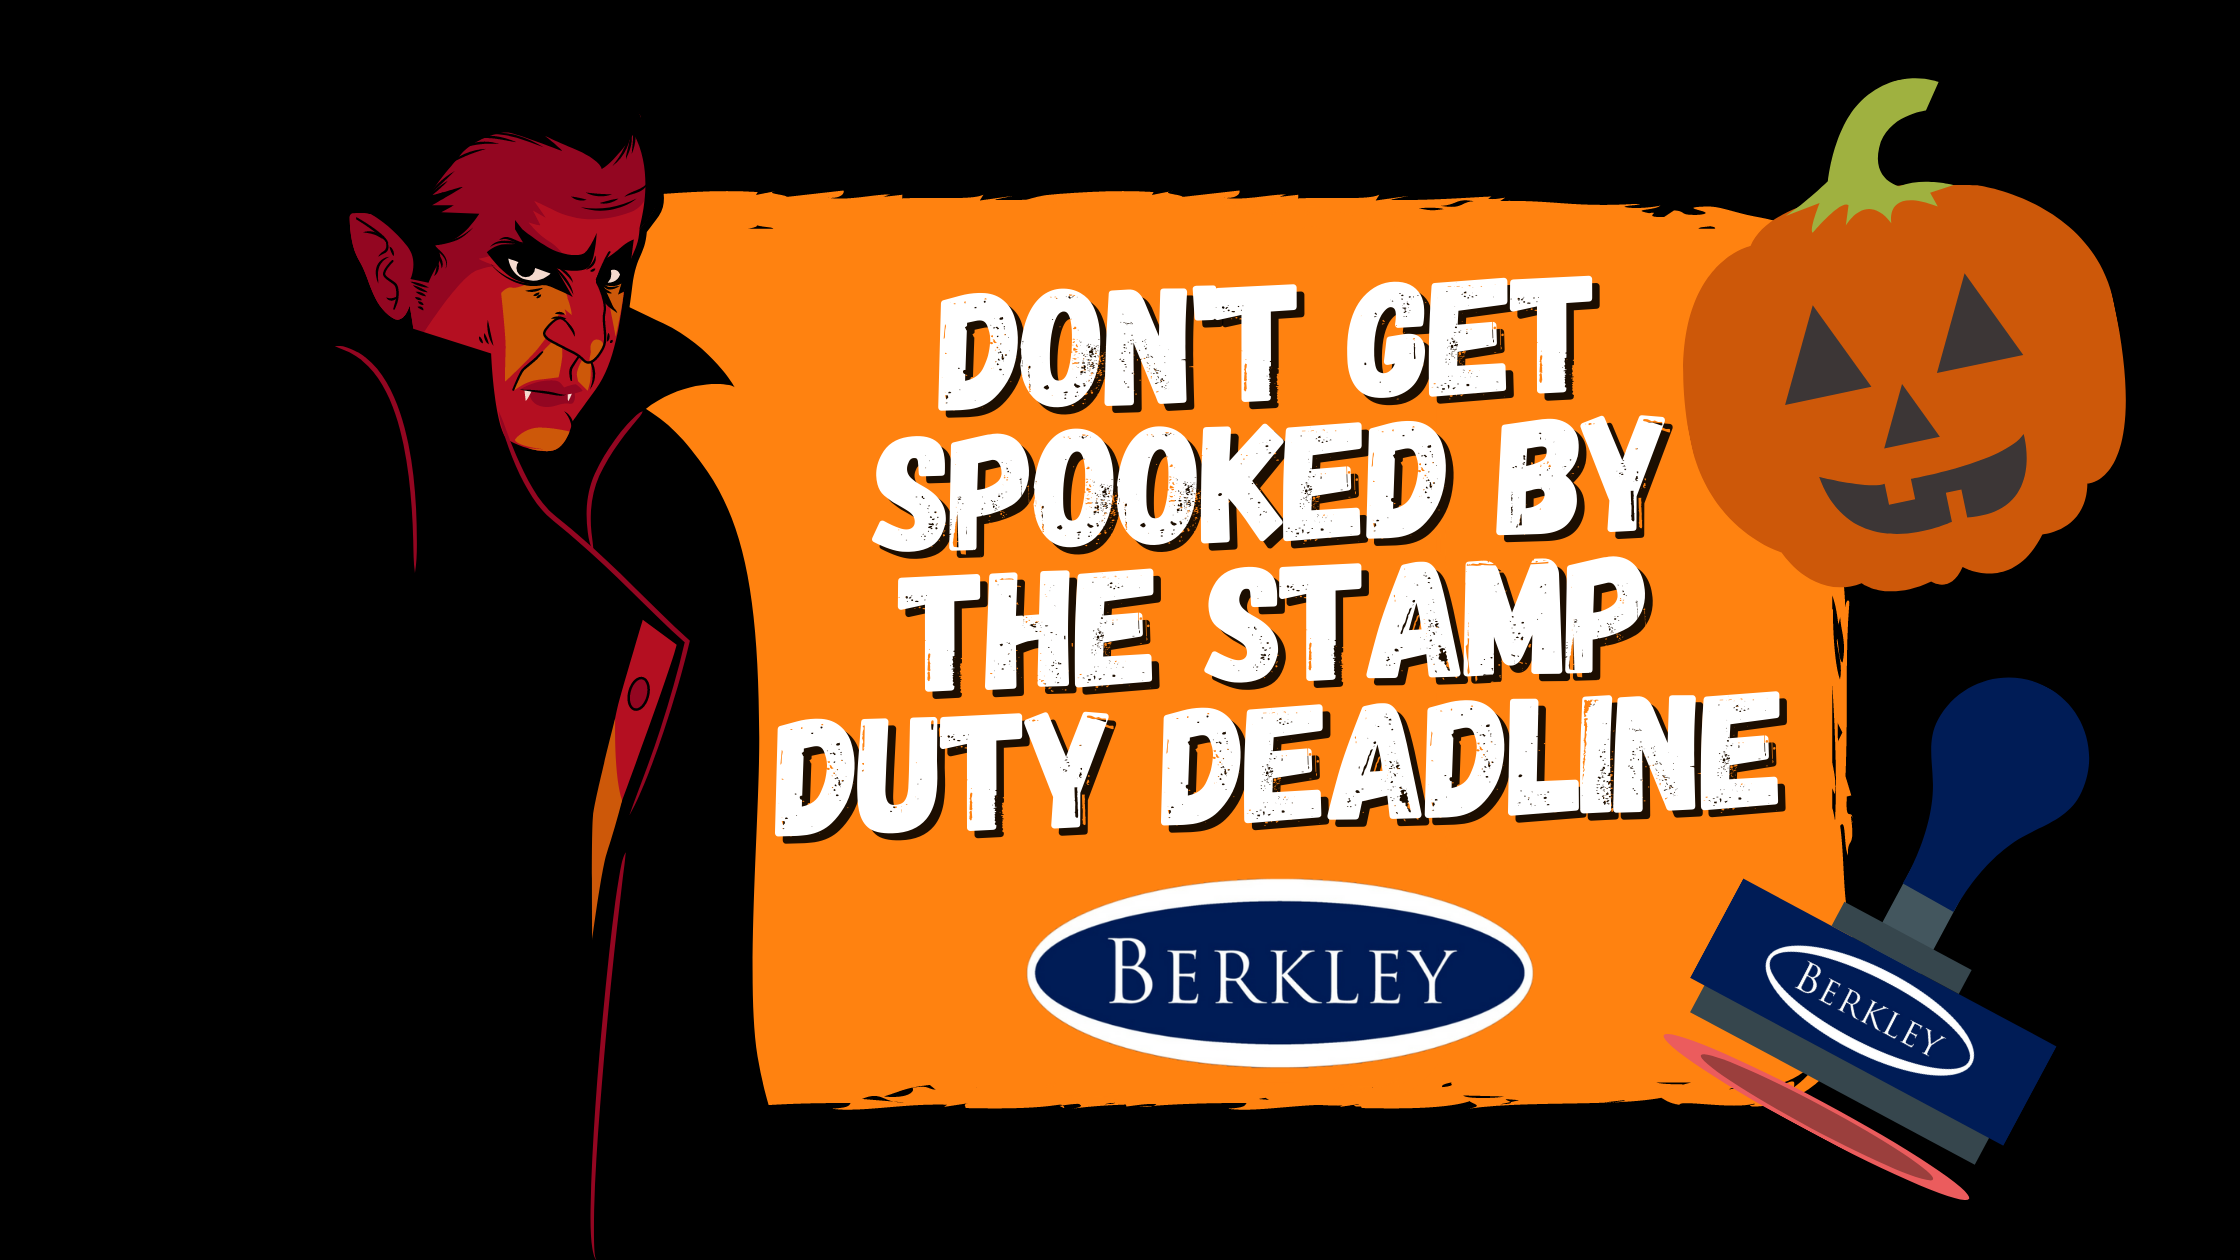 Don't get spooked by the stamp duty deadline this halloween Berkley Estate & Lettings blog